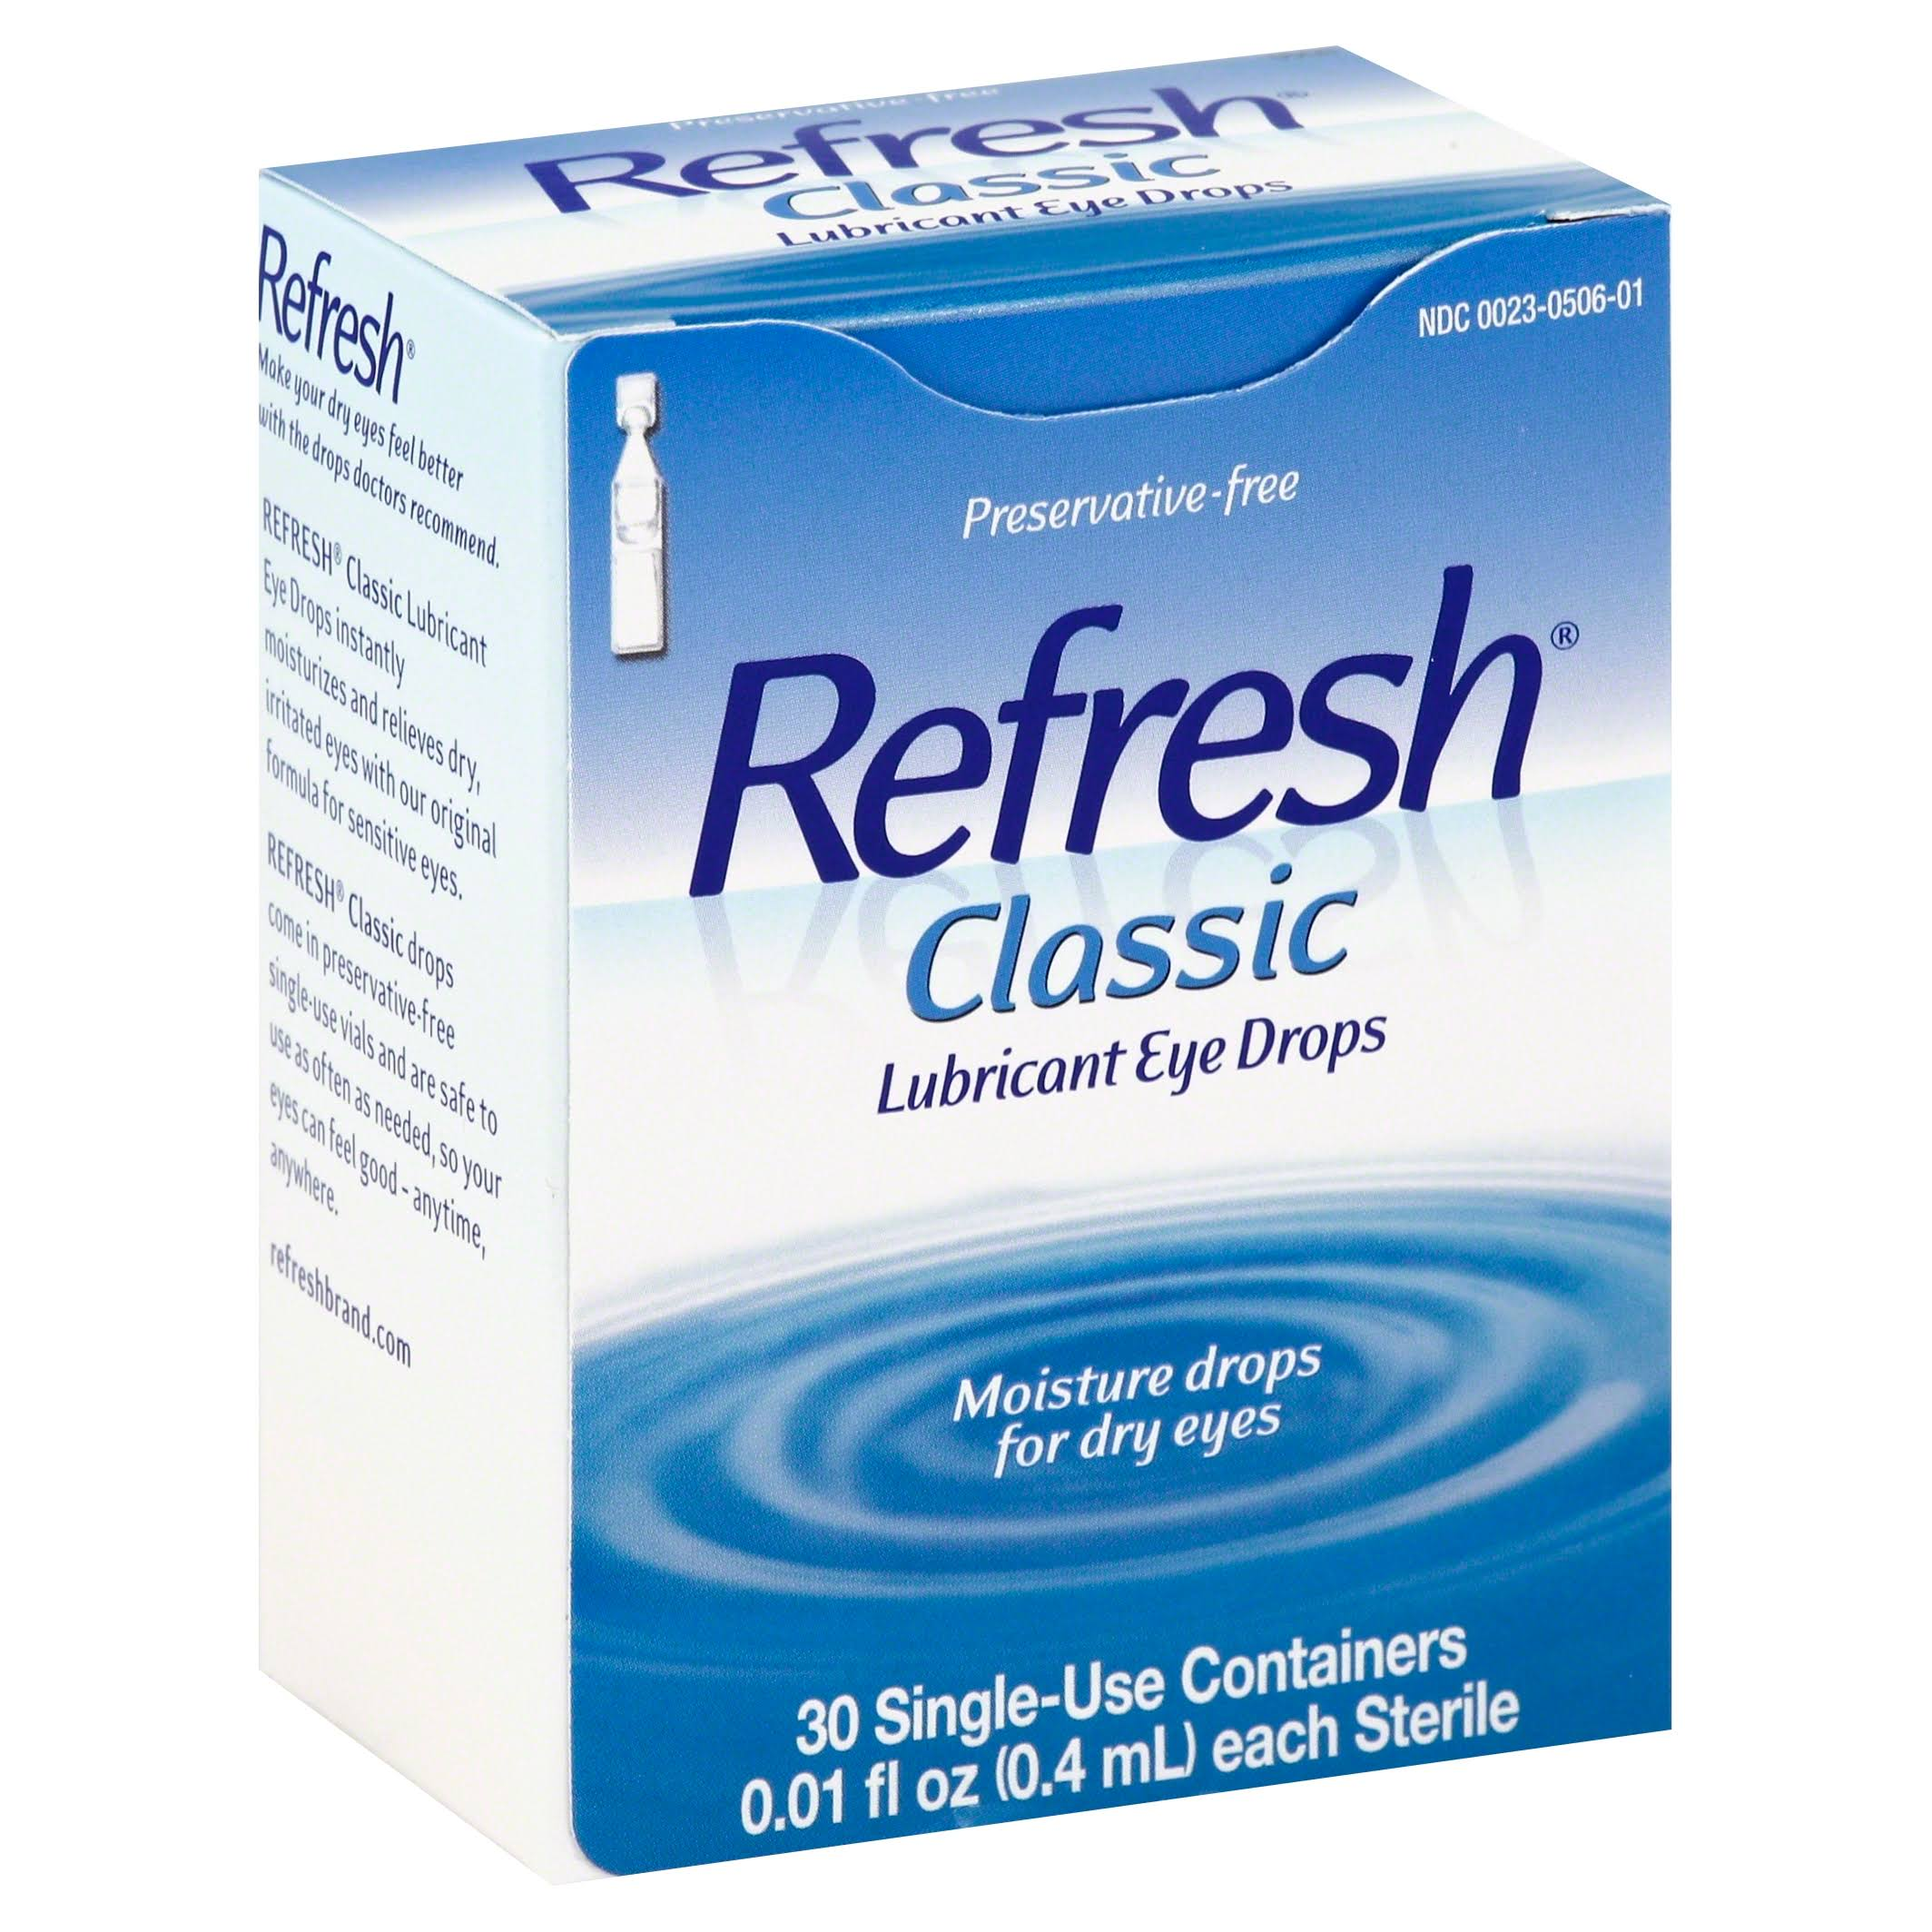 Refresh Classic Lubricant Eye Drops - 0.01oz